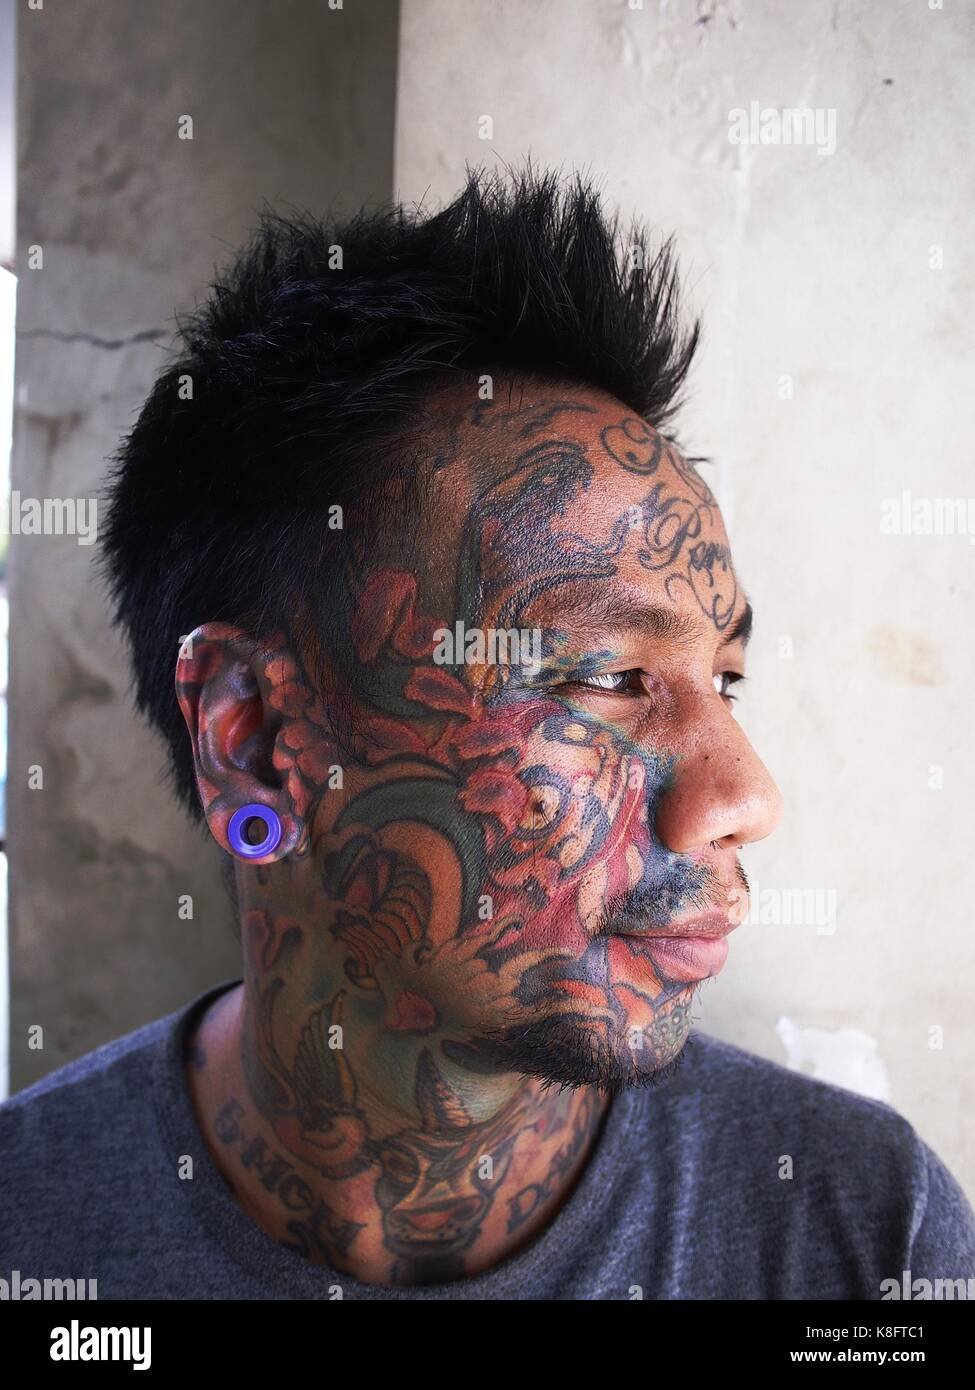 Tattoo Body Piercing High Resolution Stock Photography And Images Alamy